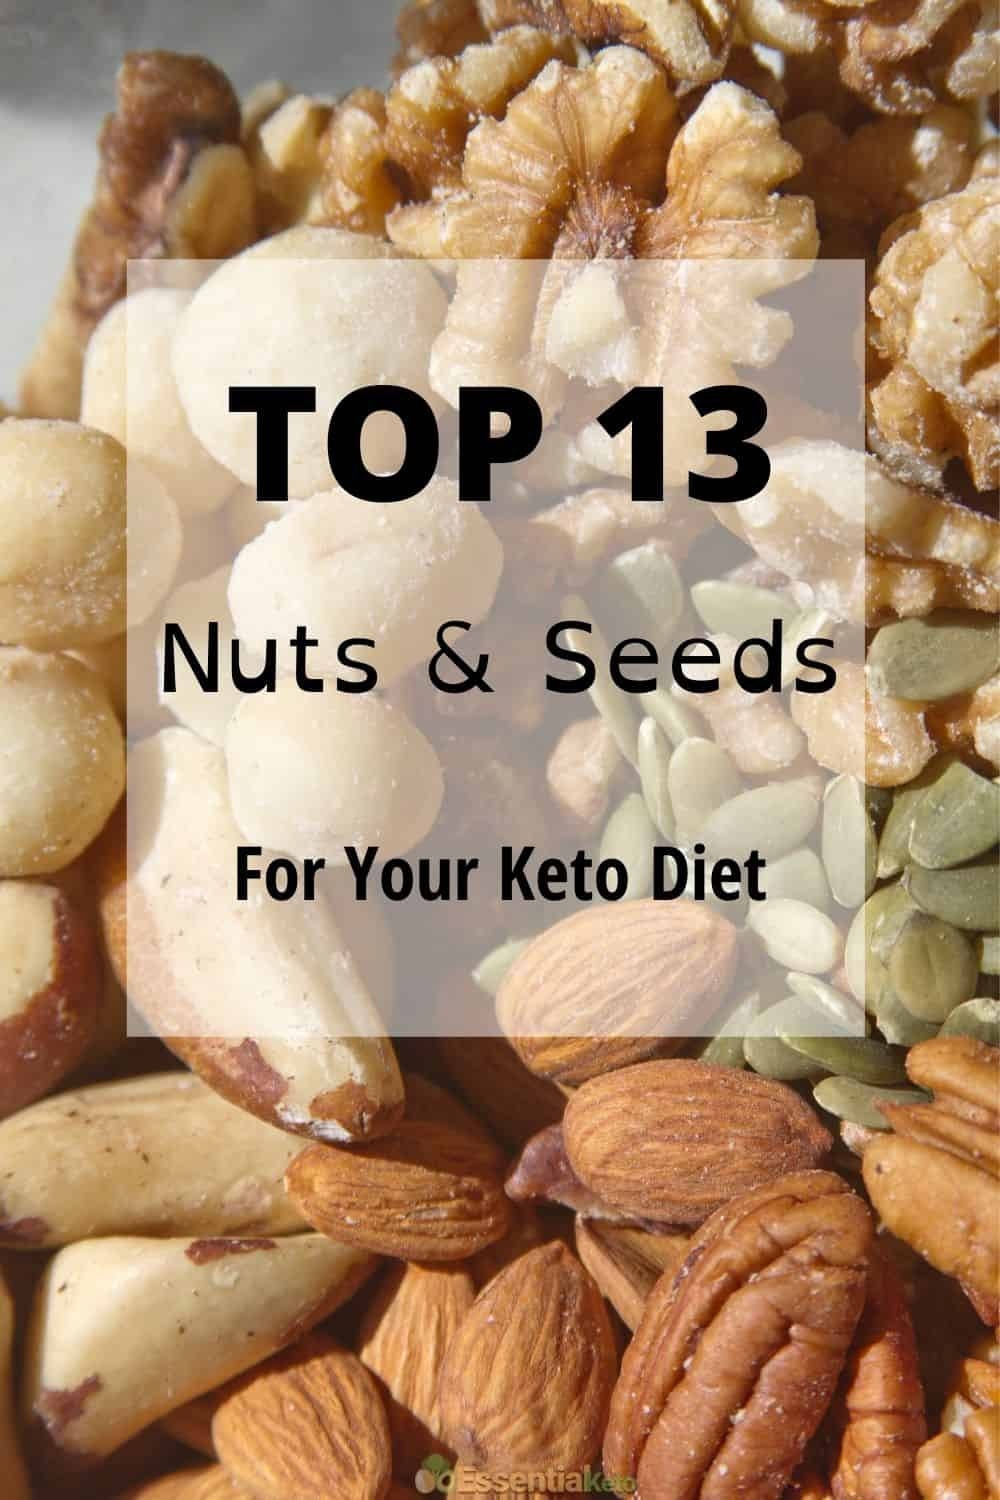 Top 13 Nuts and Seeds for Keto Diet